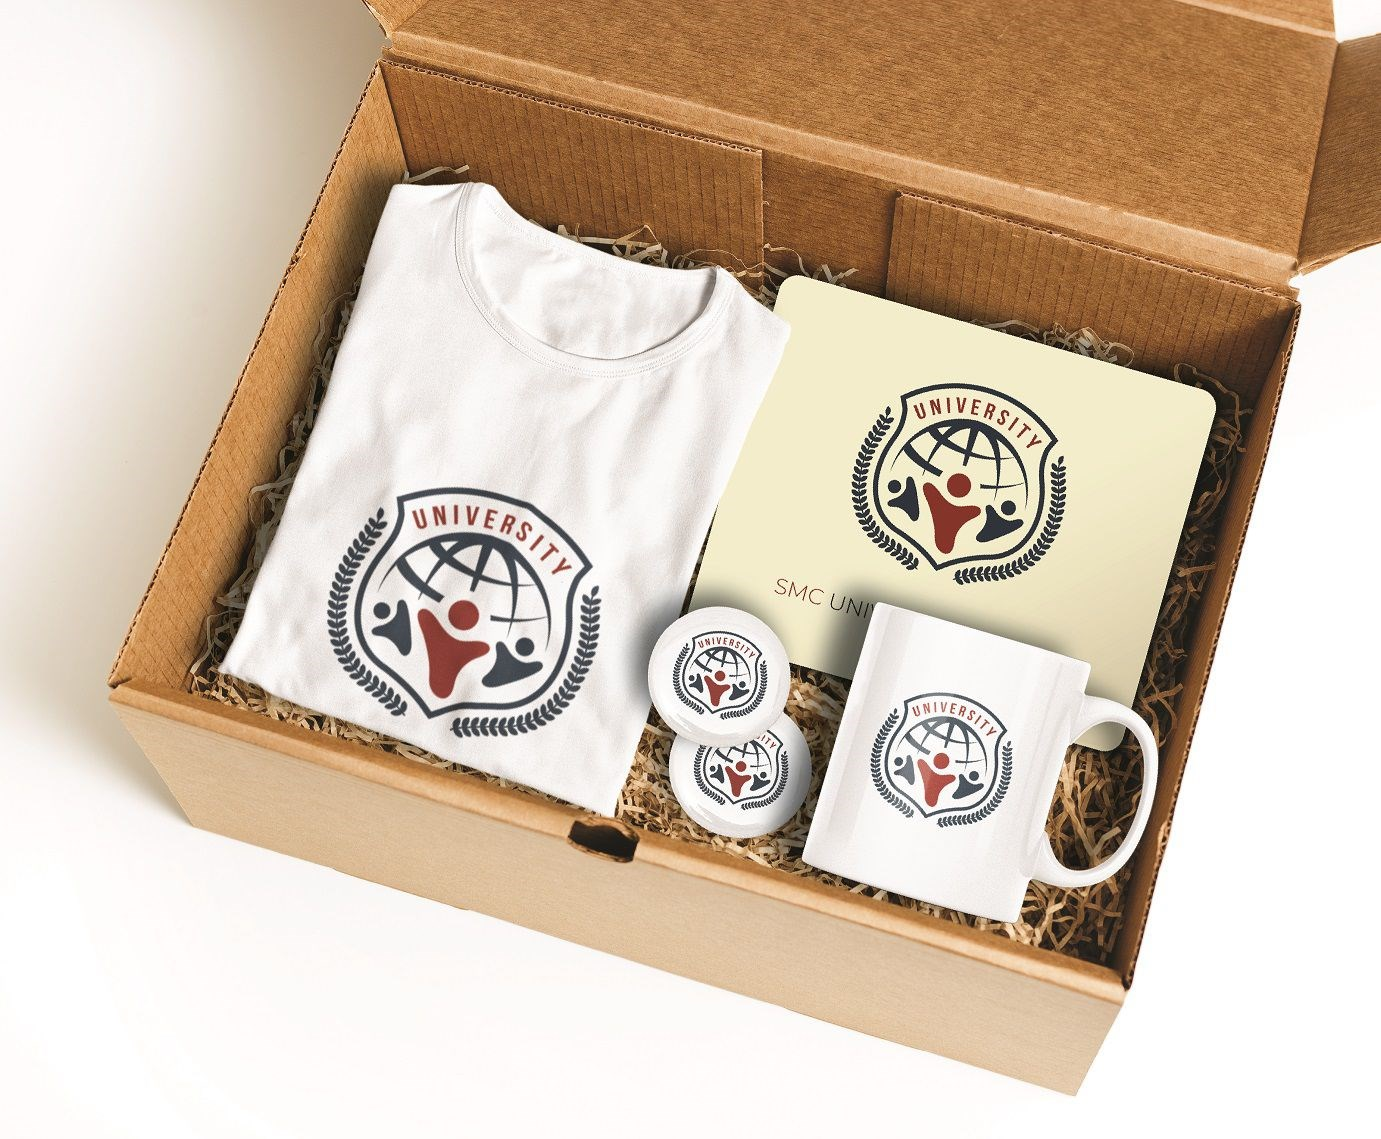 Gift sets for all gifting and merchandise purposes